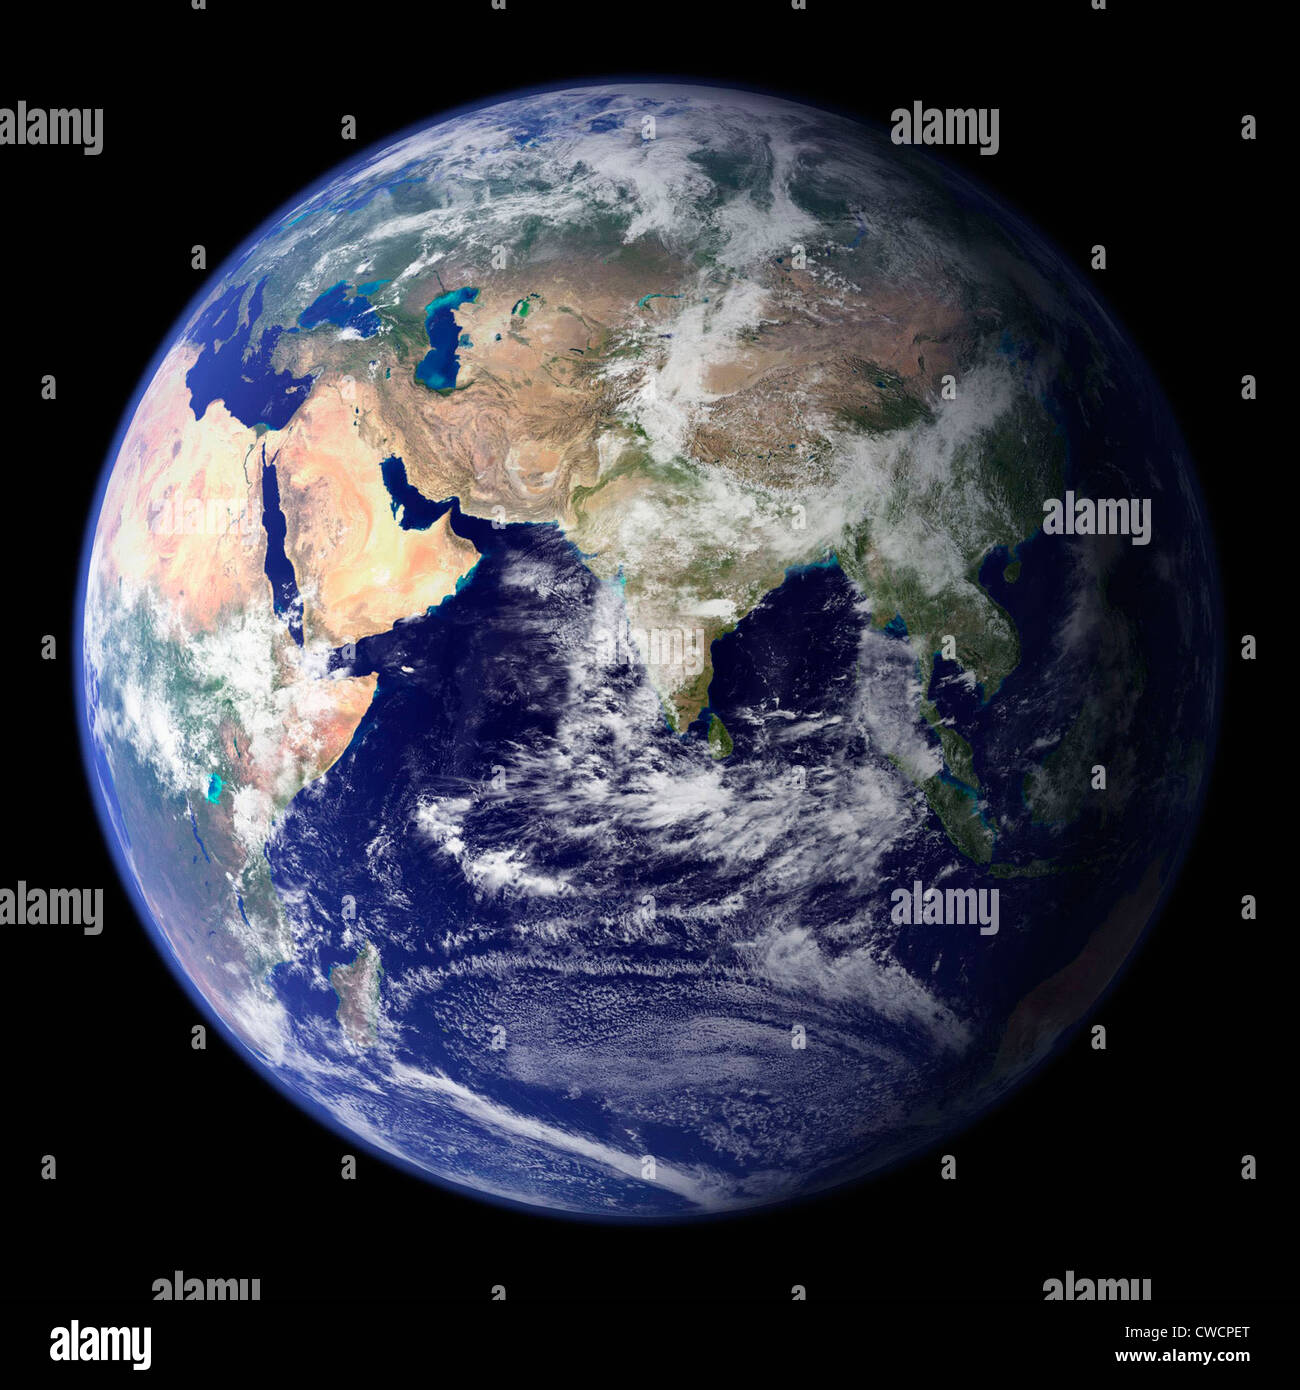 EARTH viewed from space focusing on Asia including the Middle East, Saudi Arabia and India. - Stock Image